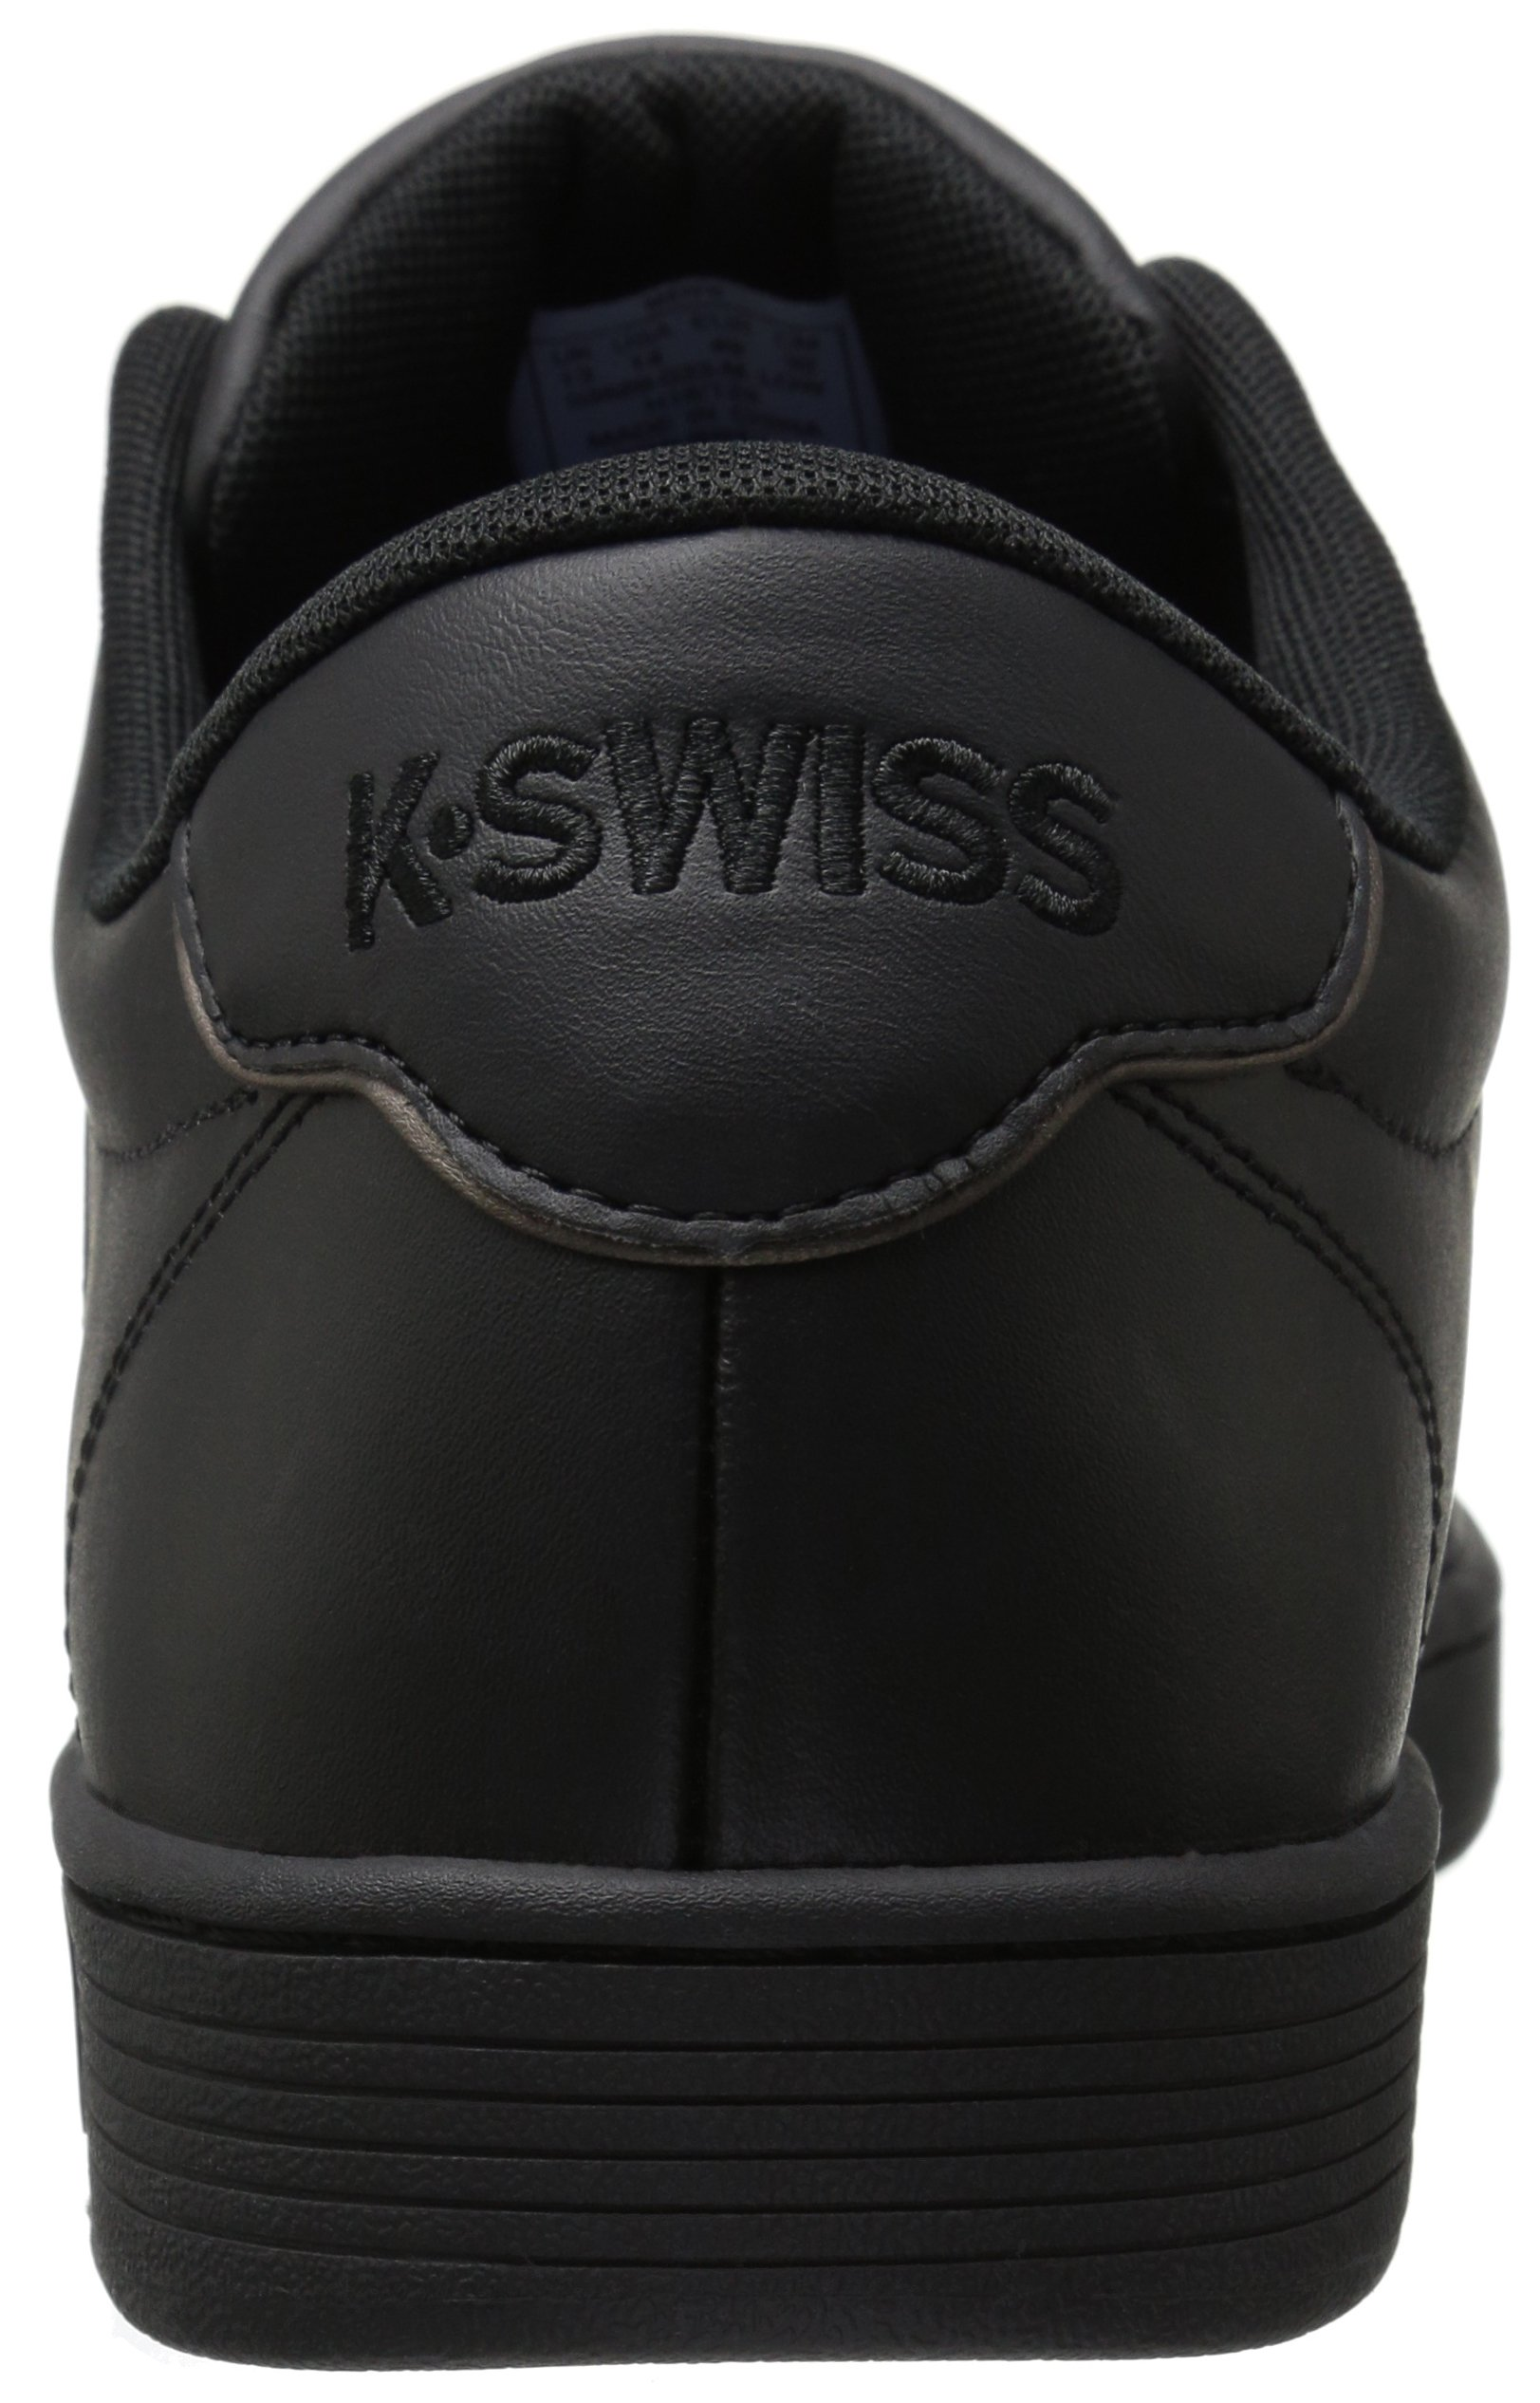 K-Swiss Men's Court PRO II Fashion Sneaker, Black/Gunmetal, 11 M US